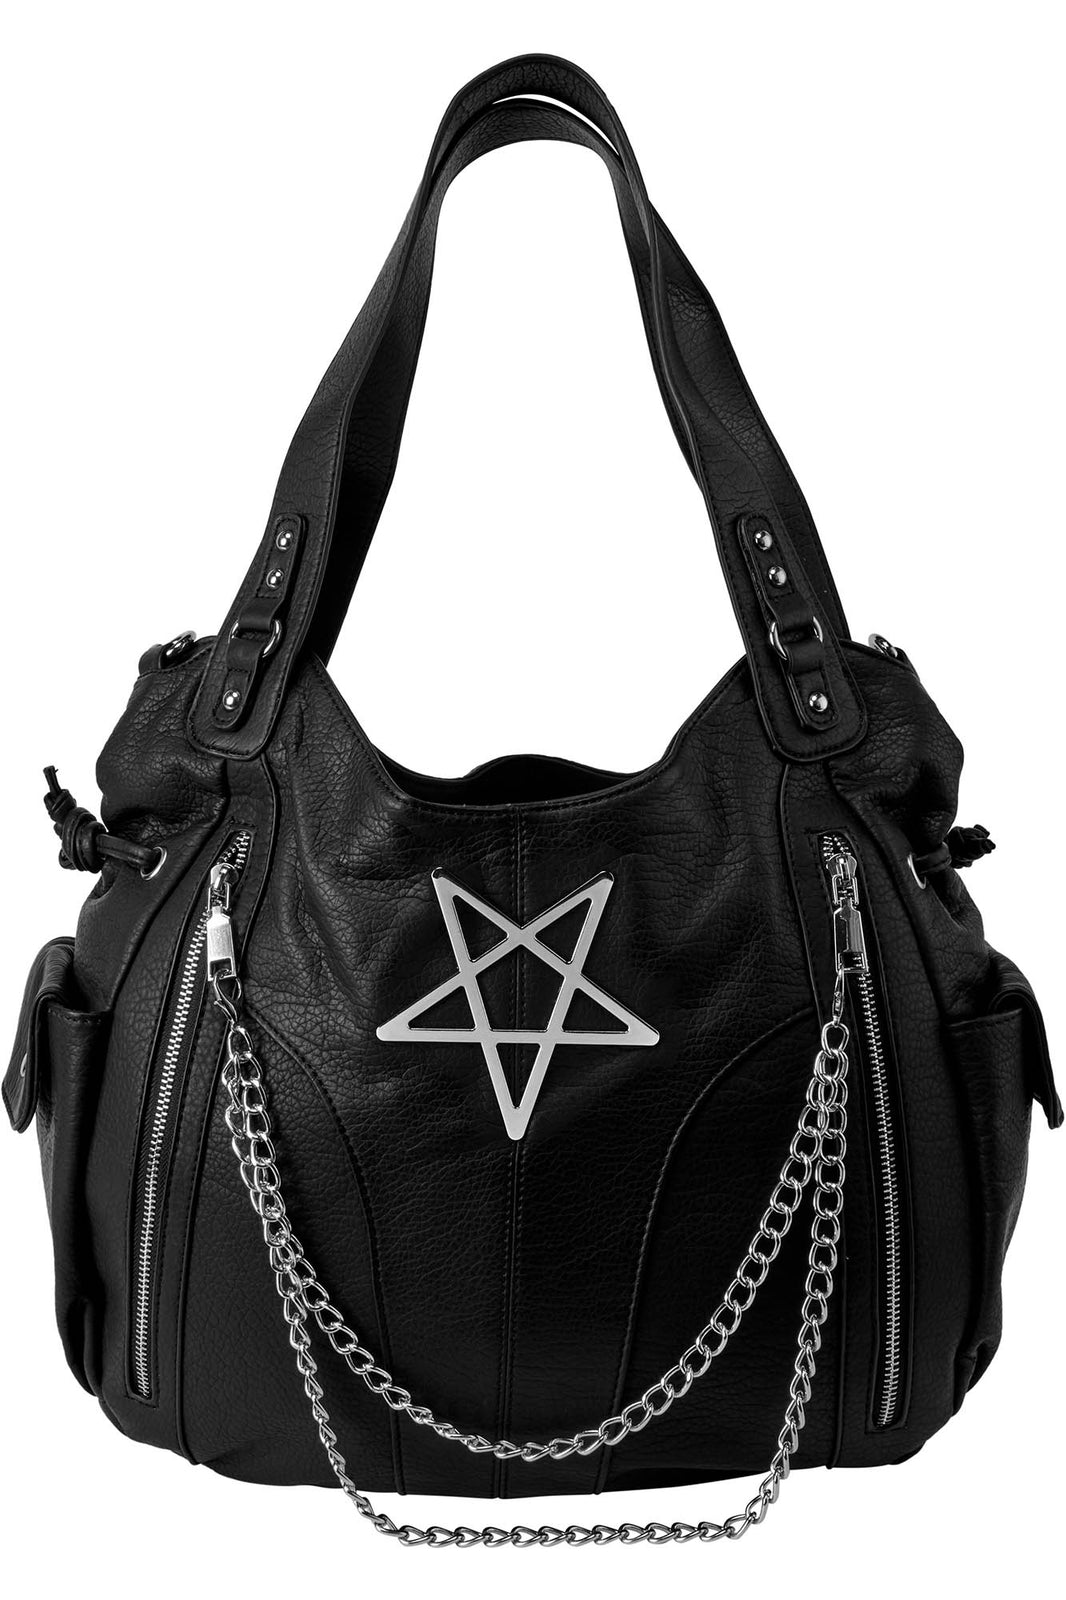 Vexation Handbag